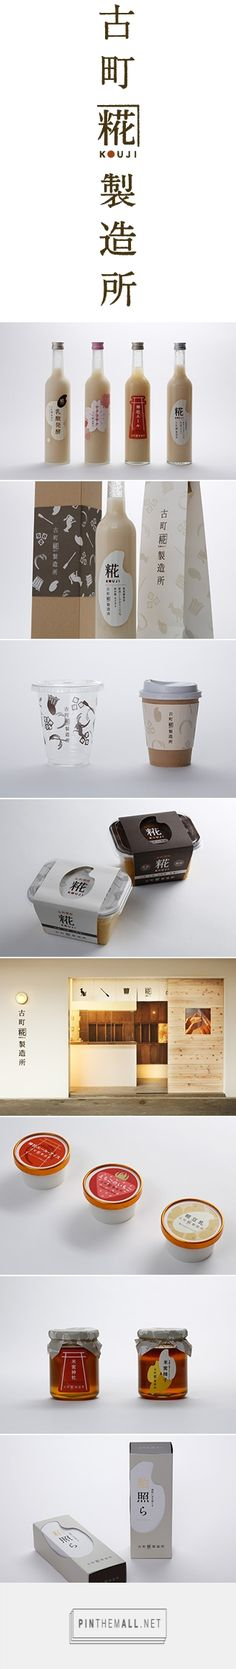 Furumachi-Kouji via AWATSUJI design curated by Packaging Diva PD. Such pretty packaging.